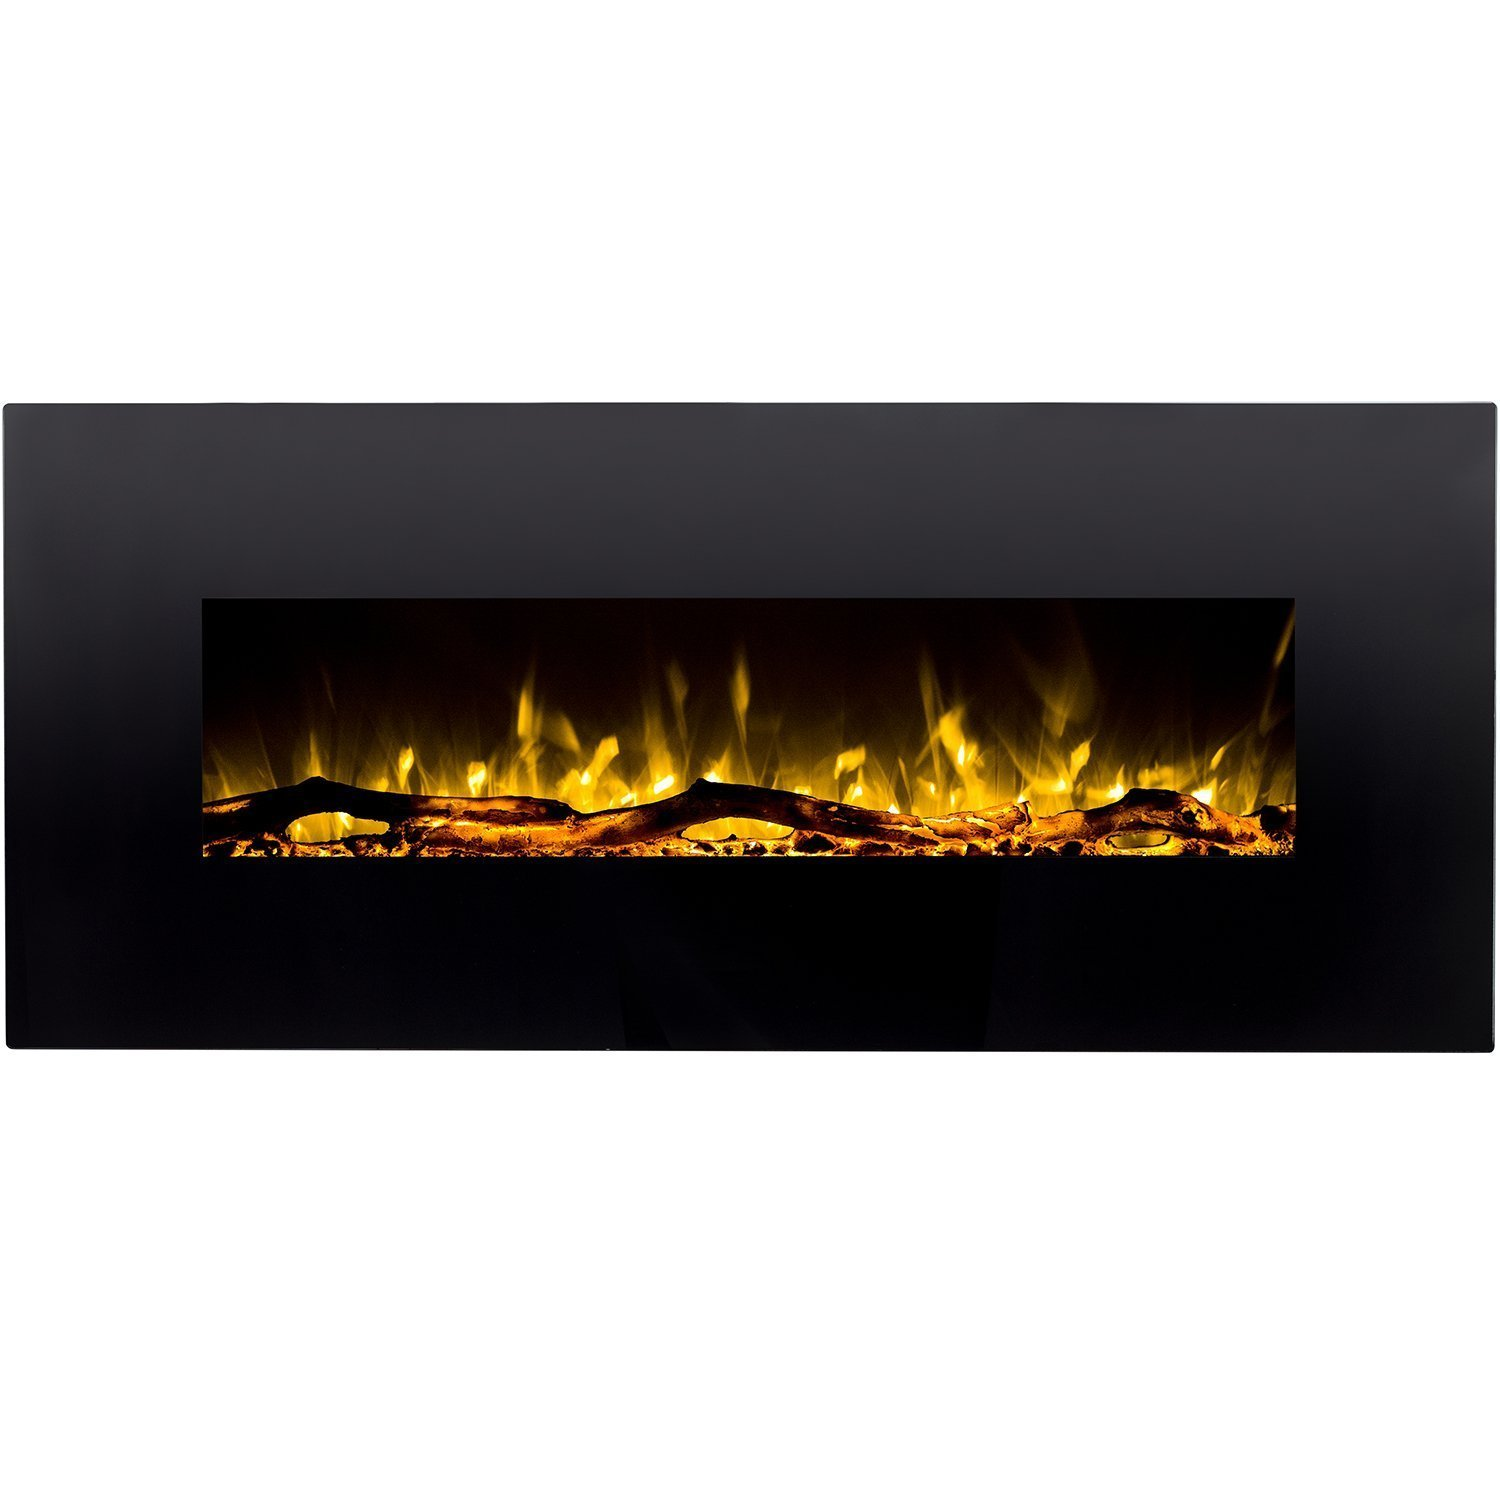 Ventless Wall Mount Gas Fireplace Denali 60 Inch Black Ventless Heater Electric Wall Mounted